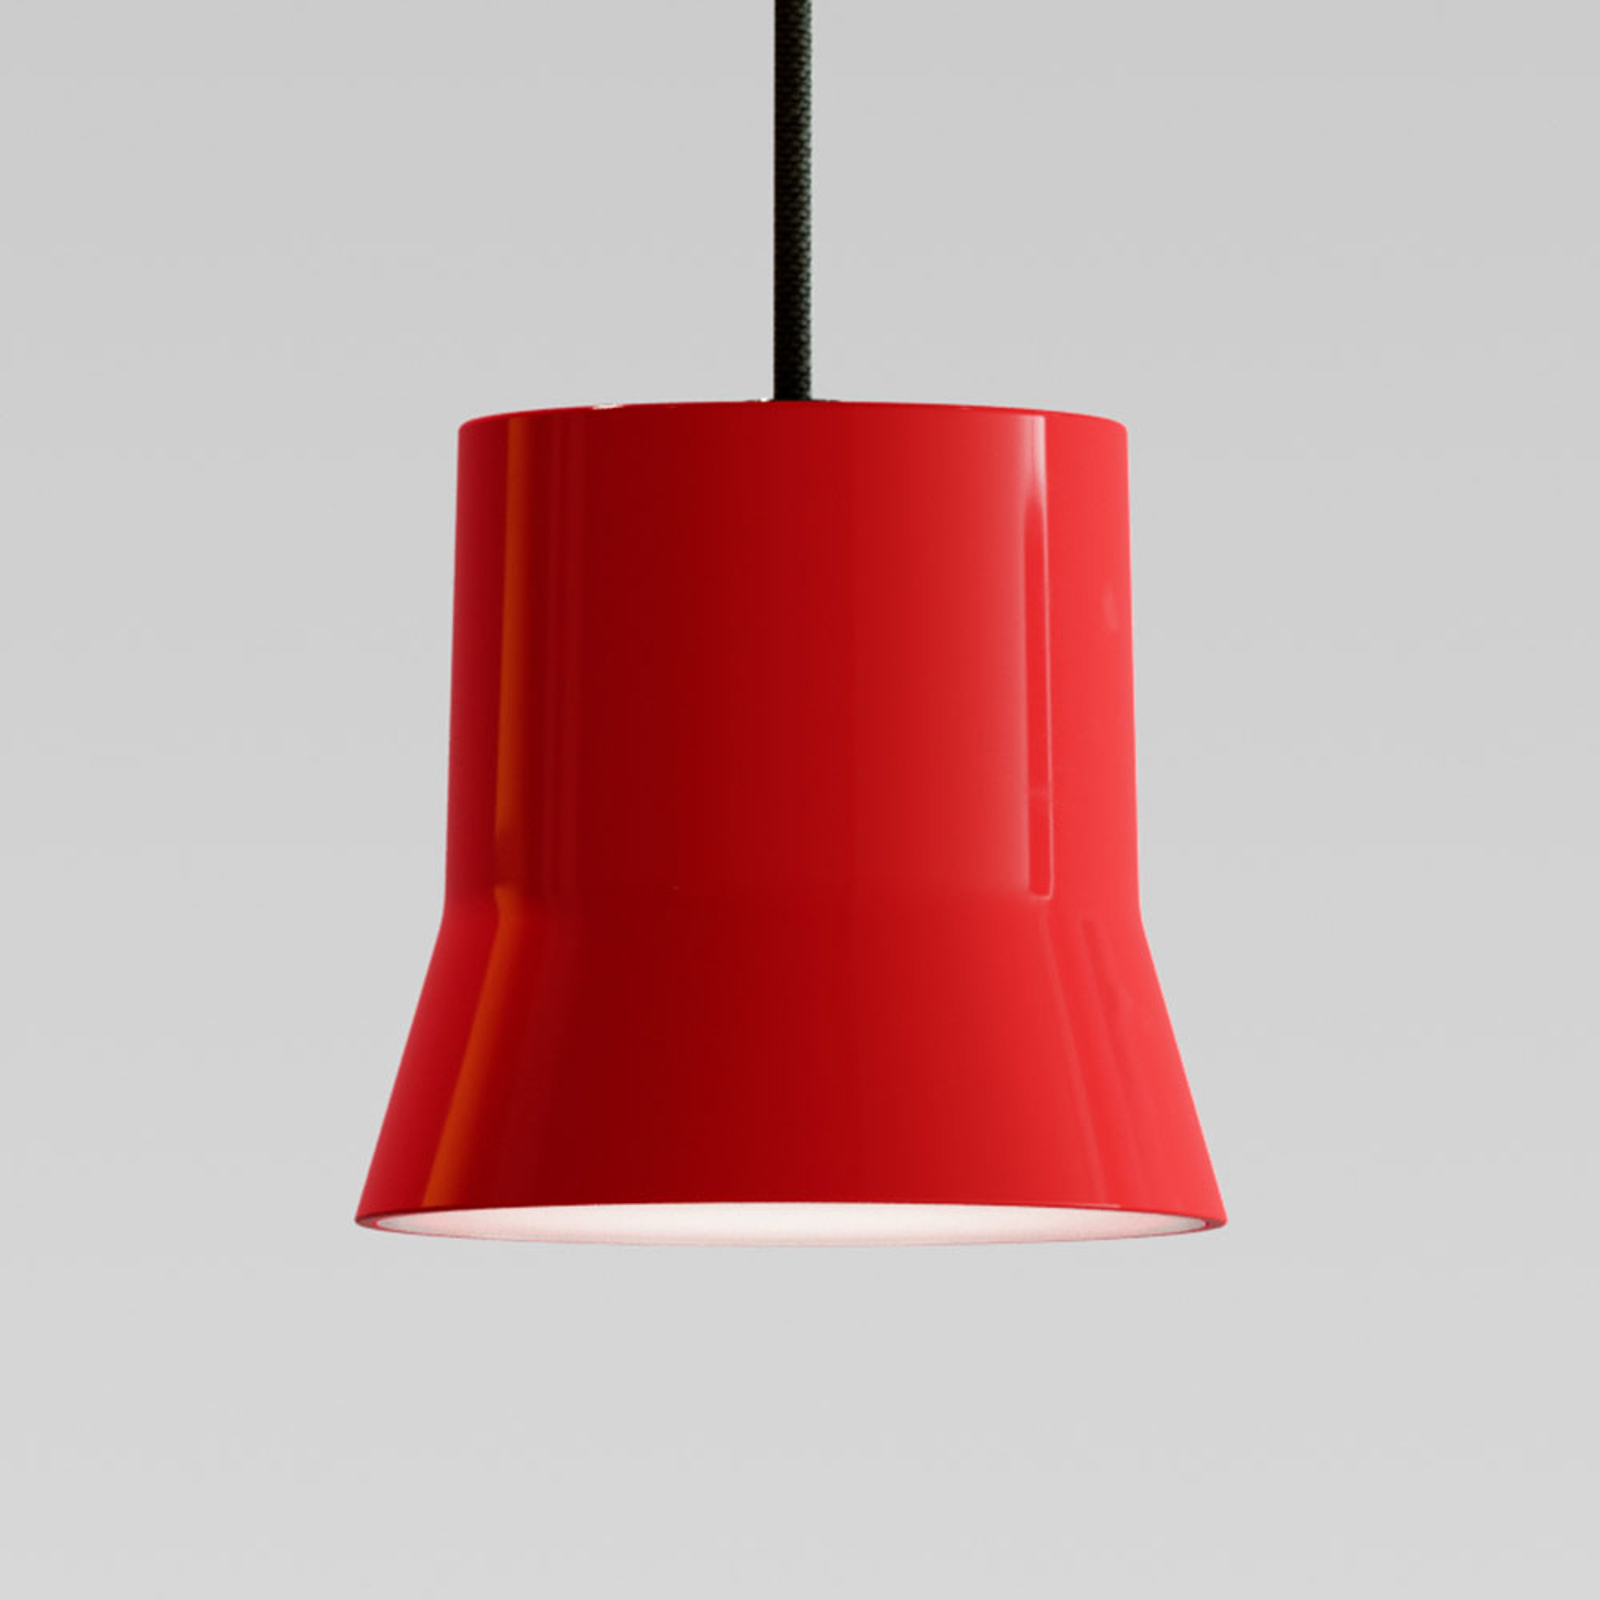 Artemide GIO.light LED-Hängeleuchte, rot